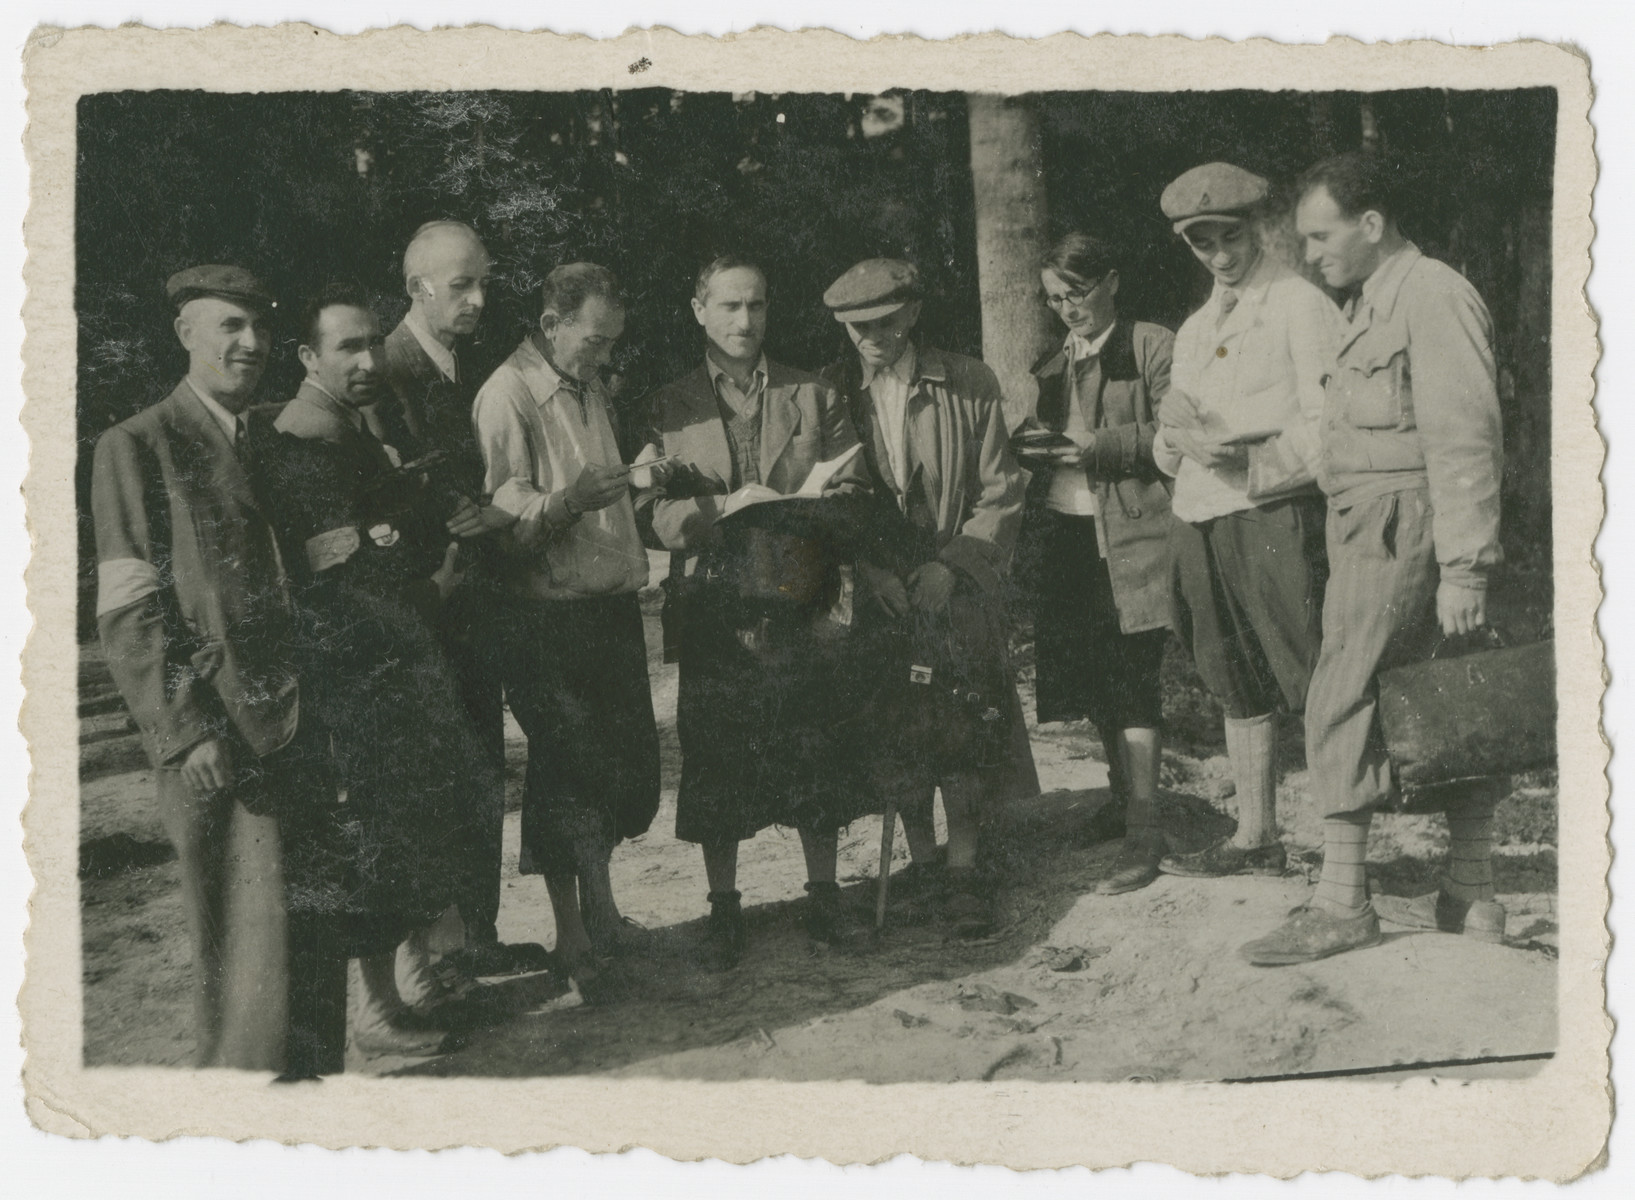 Jewish men in the  Karpaten Oel labor camp near Boryslaw pray outside.  The man standing fourth from the right has been tentatively identified as  Moses (Mojsesz) Fried (b. April 27, 1900 in Boryslav, Poland).